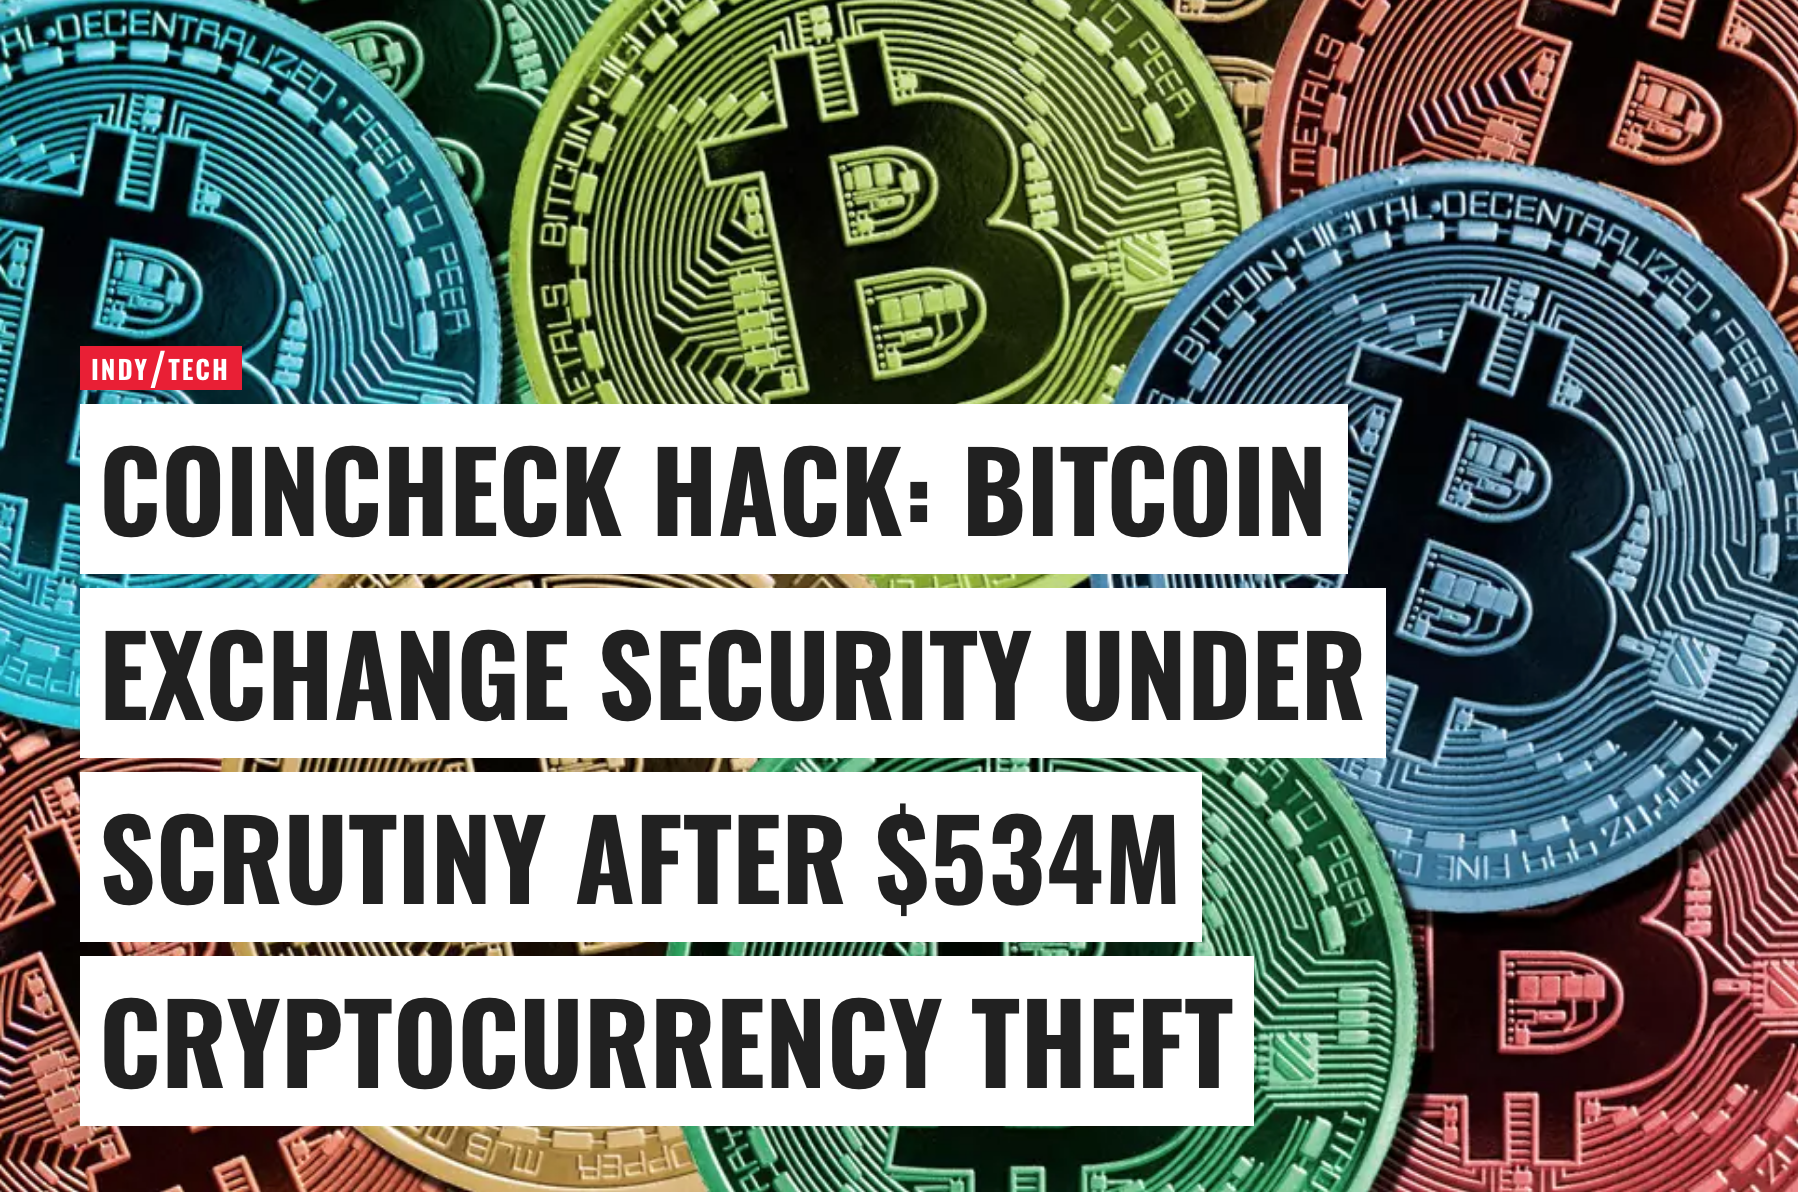 https://www.independent.co.uk/life-style/gadgets-and-tech/news/coincheck-hack-nem-latest-updates-japan-bitcoin-theft-cryptocurrency-inspect-exchanges-south-korea-a8183281.html